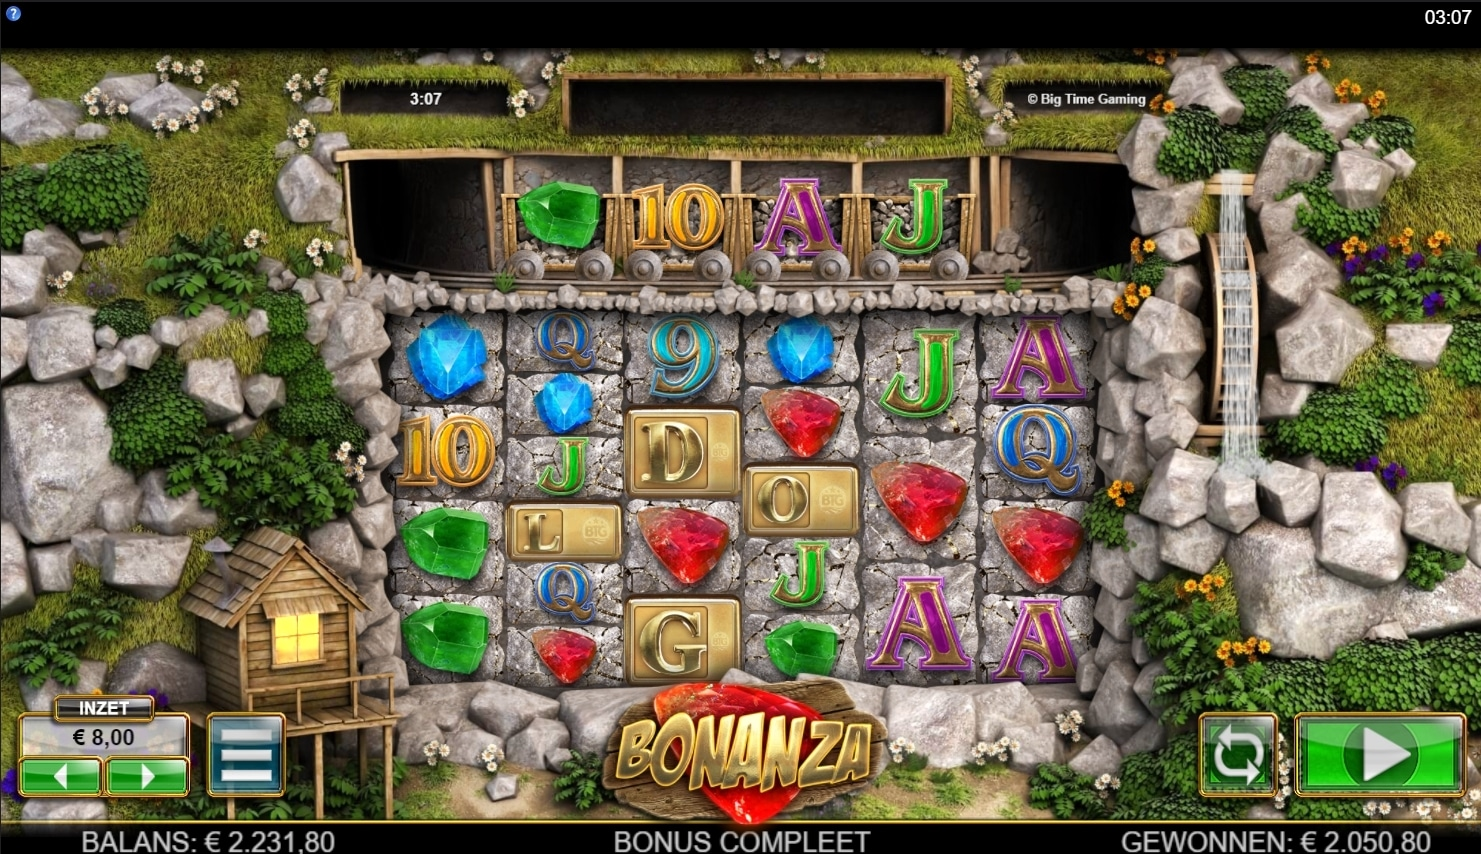 Bonanza By Big Time gaming Big Win Picture